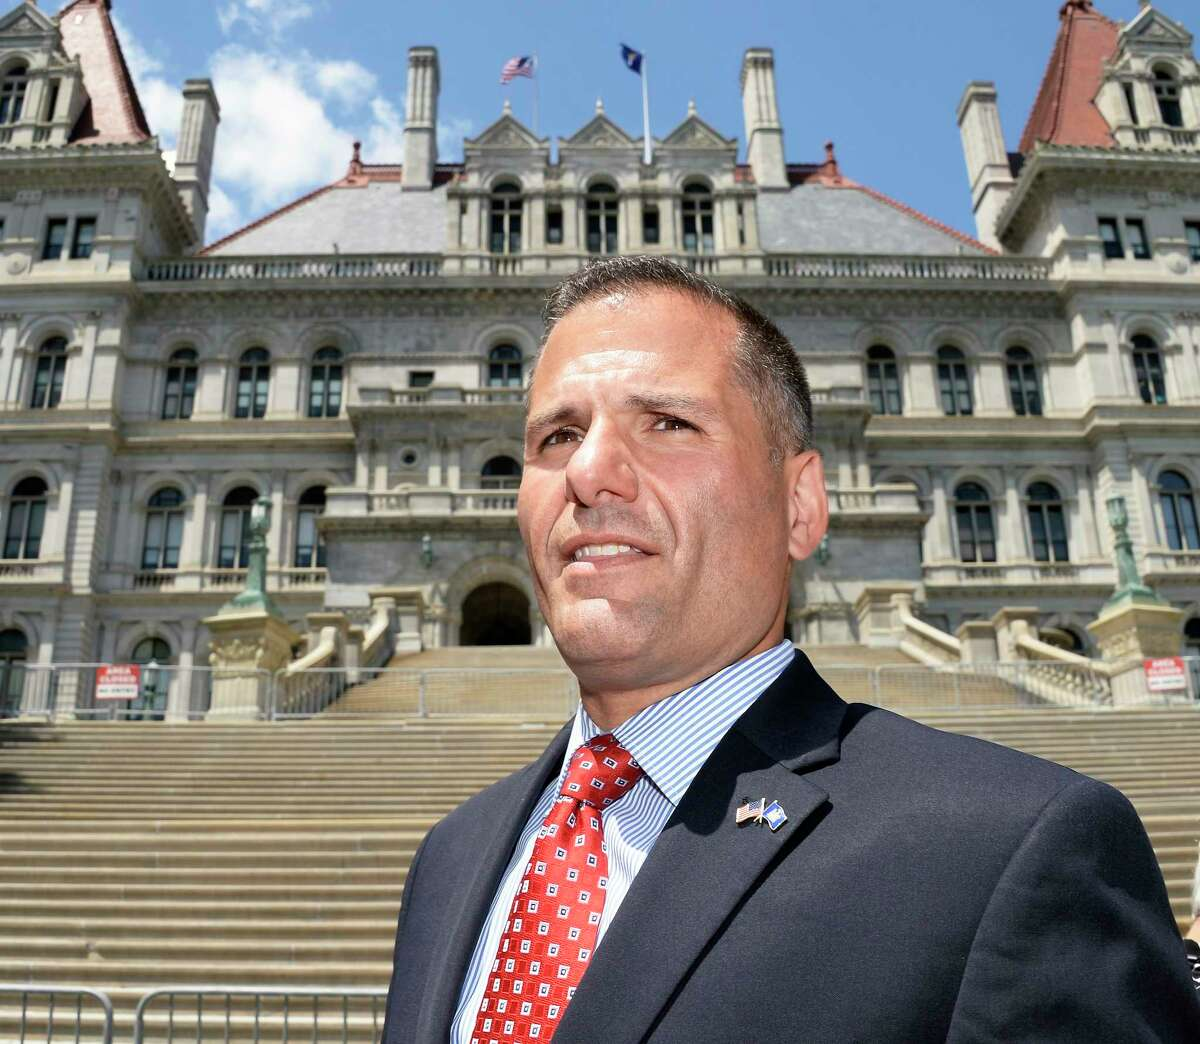 Gubernatorial Candidate Marc Molinaro arrives at the Capitol to call on the office of the United States Attorney to investigate possible federal laws broken by Governor Andrew Cuomo Wednesday July 18, 2018 in Albany, NY. (John Carl D'Annibale/Times Union)